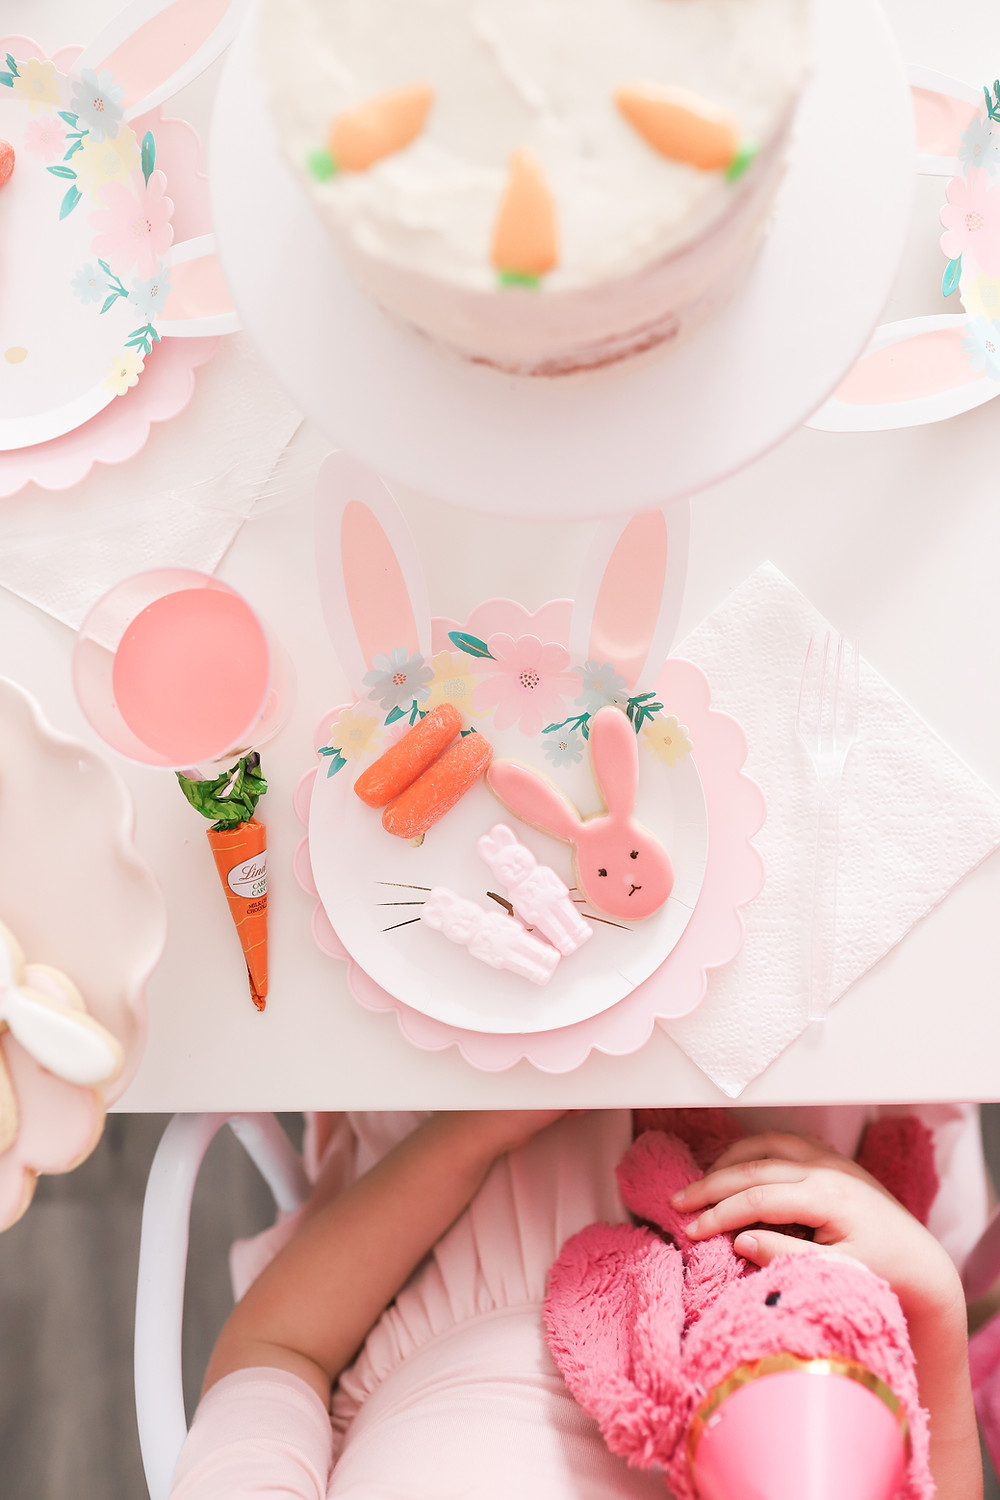 A plate of treats Easter at a bunny birthday on a floral bunny paper plate